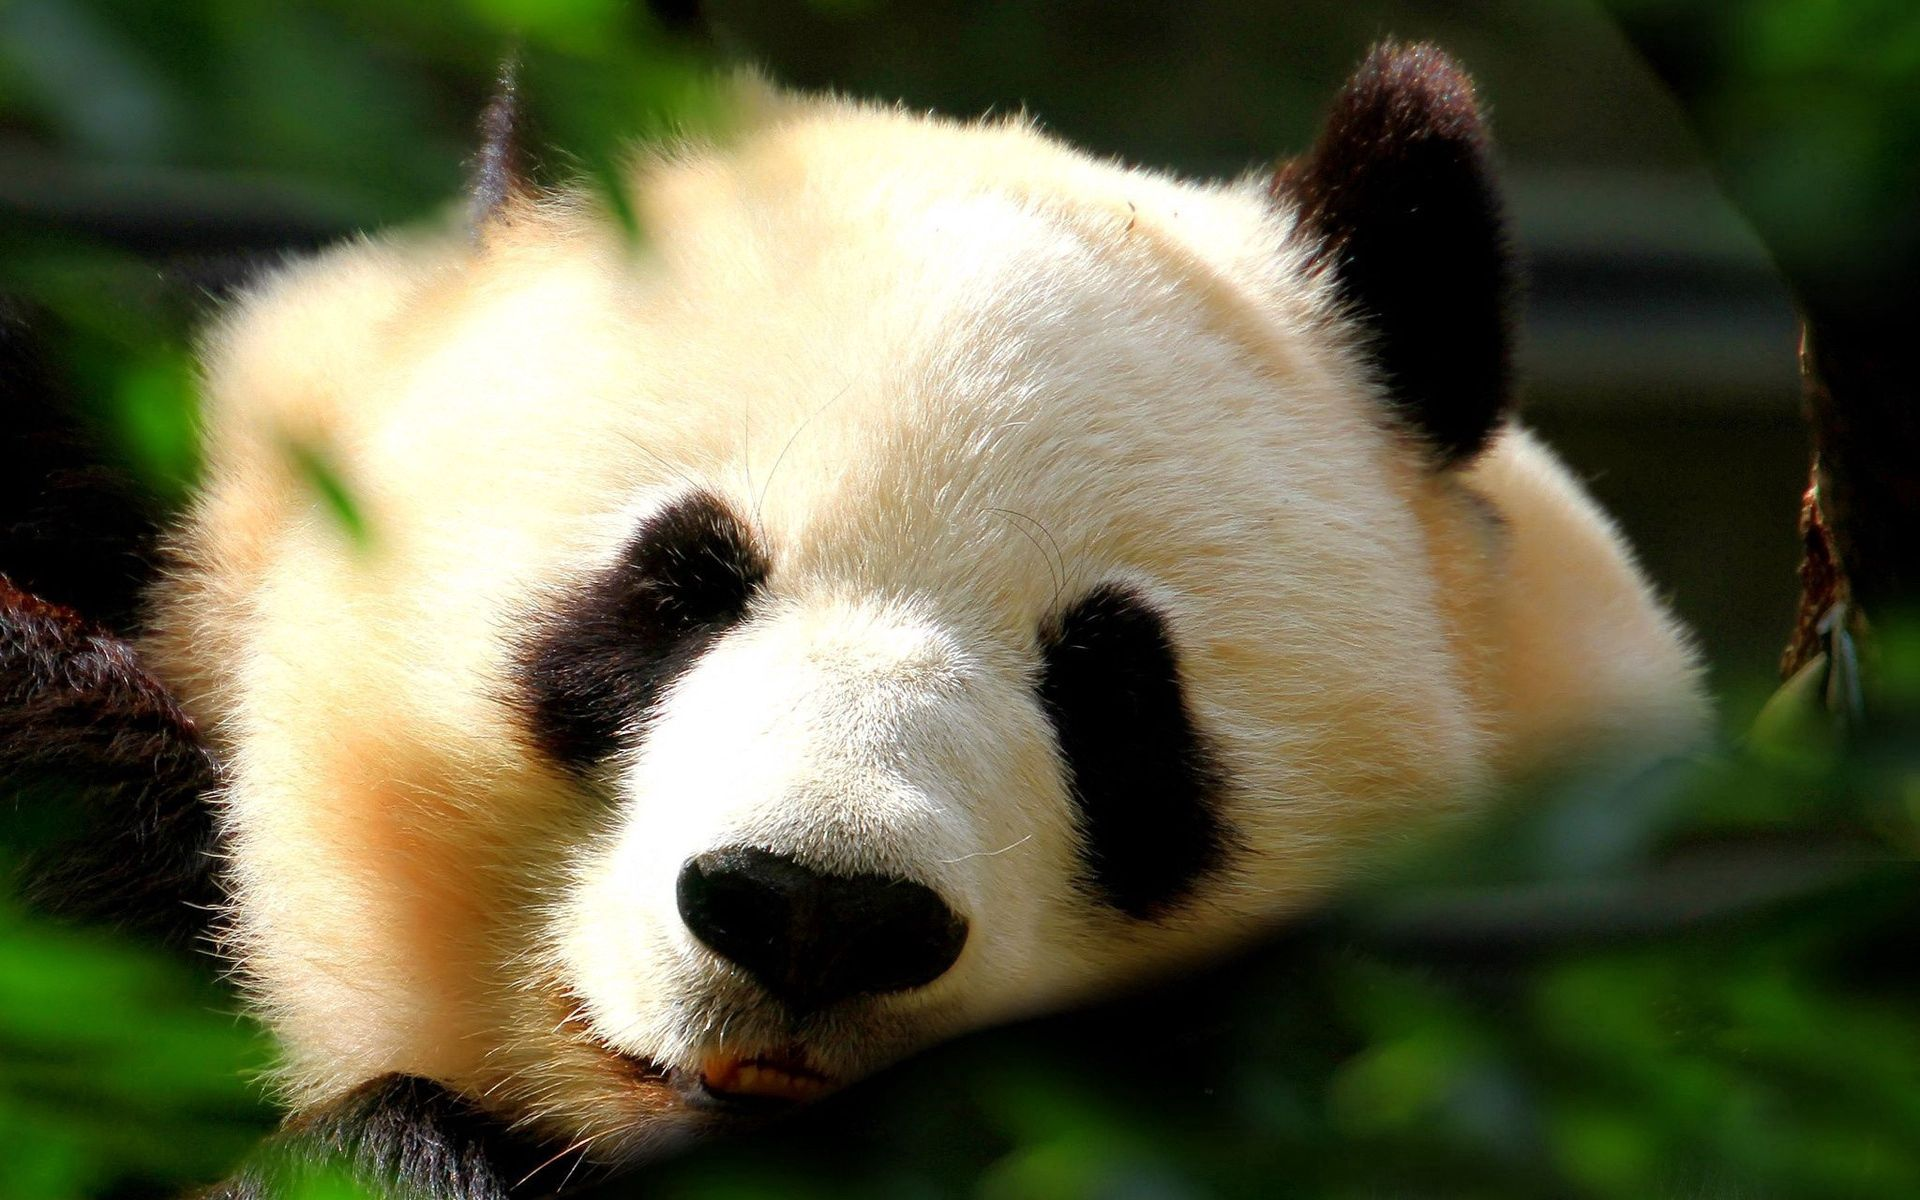 114241 download wallpaper Animals, Panda, Muzzle, Shine, Light, Nice, Sweetheart screensavers and pictures for free